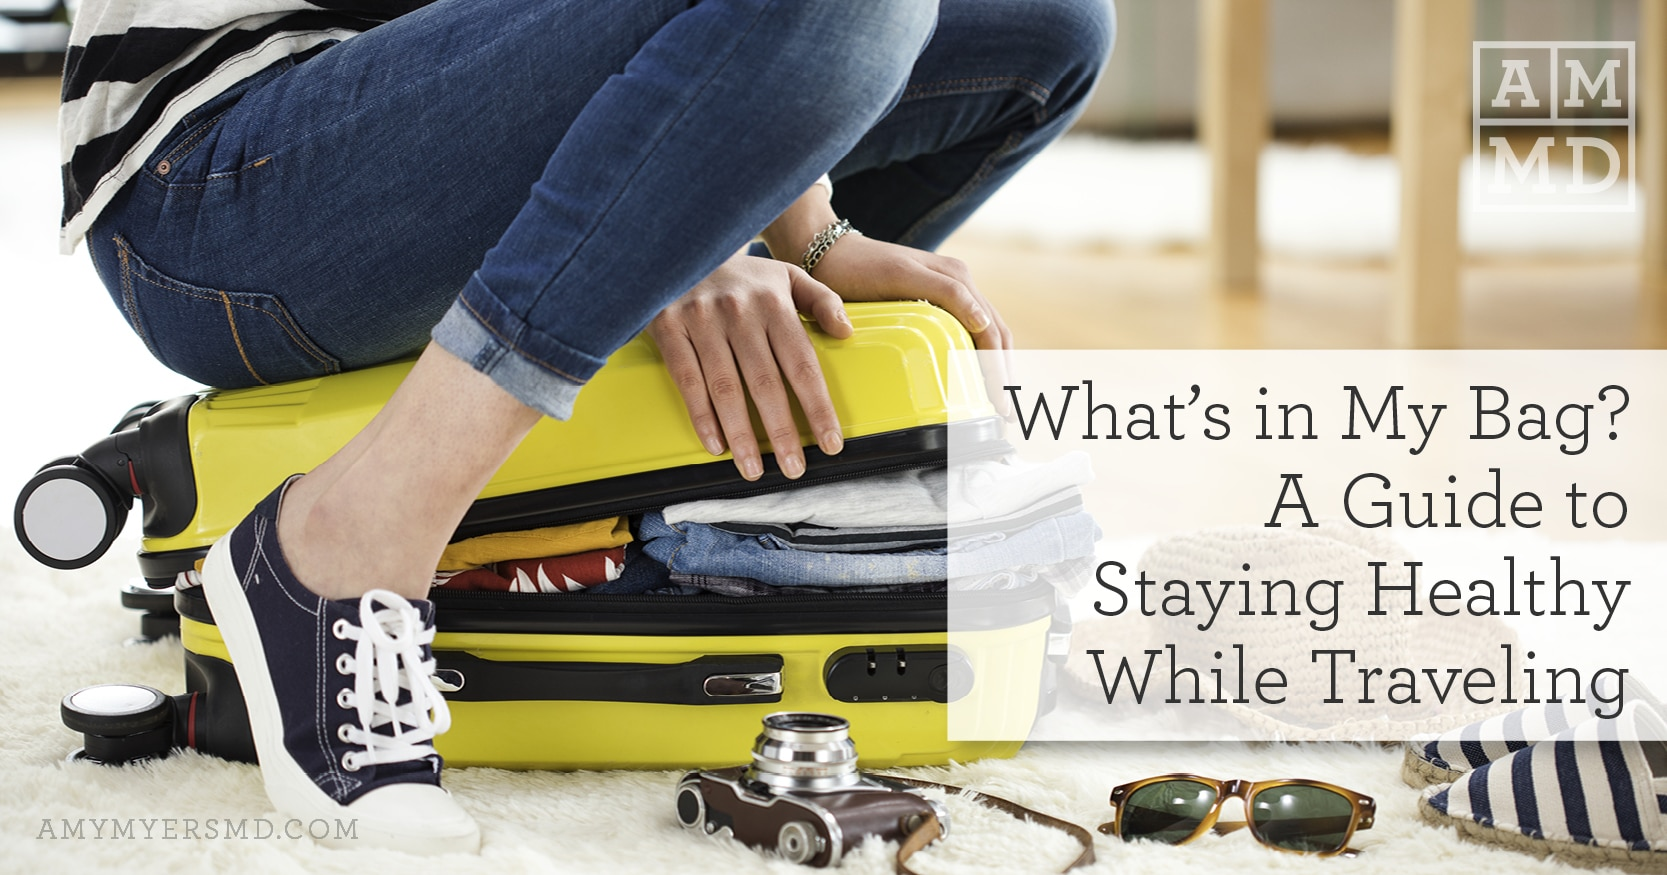 A Guide to Staying Healthy While Traveling - A Woman Trying to Close Her Suitcase - Featured Image - Amy Myers MD